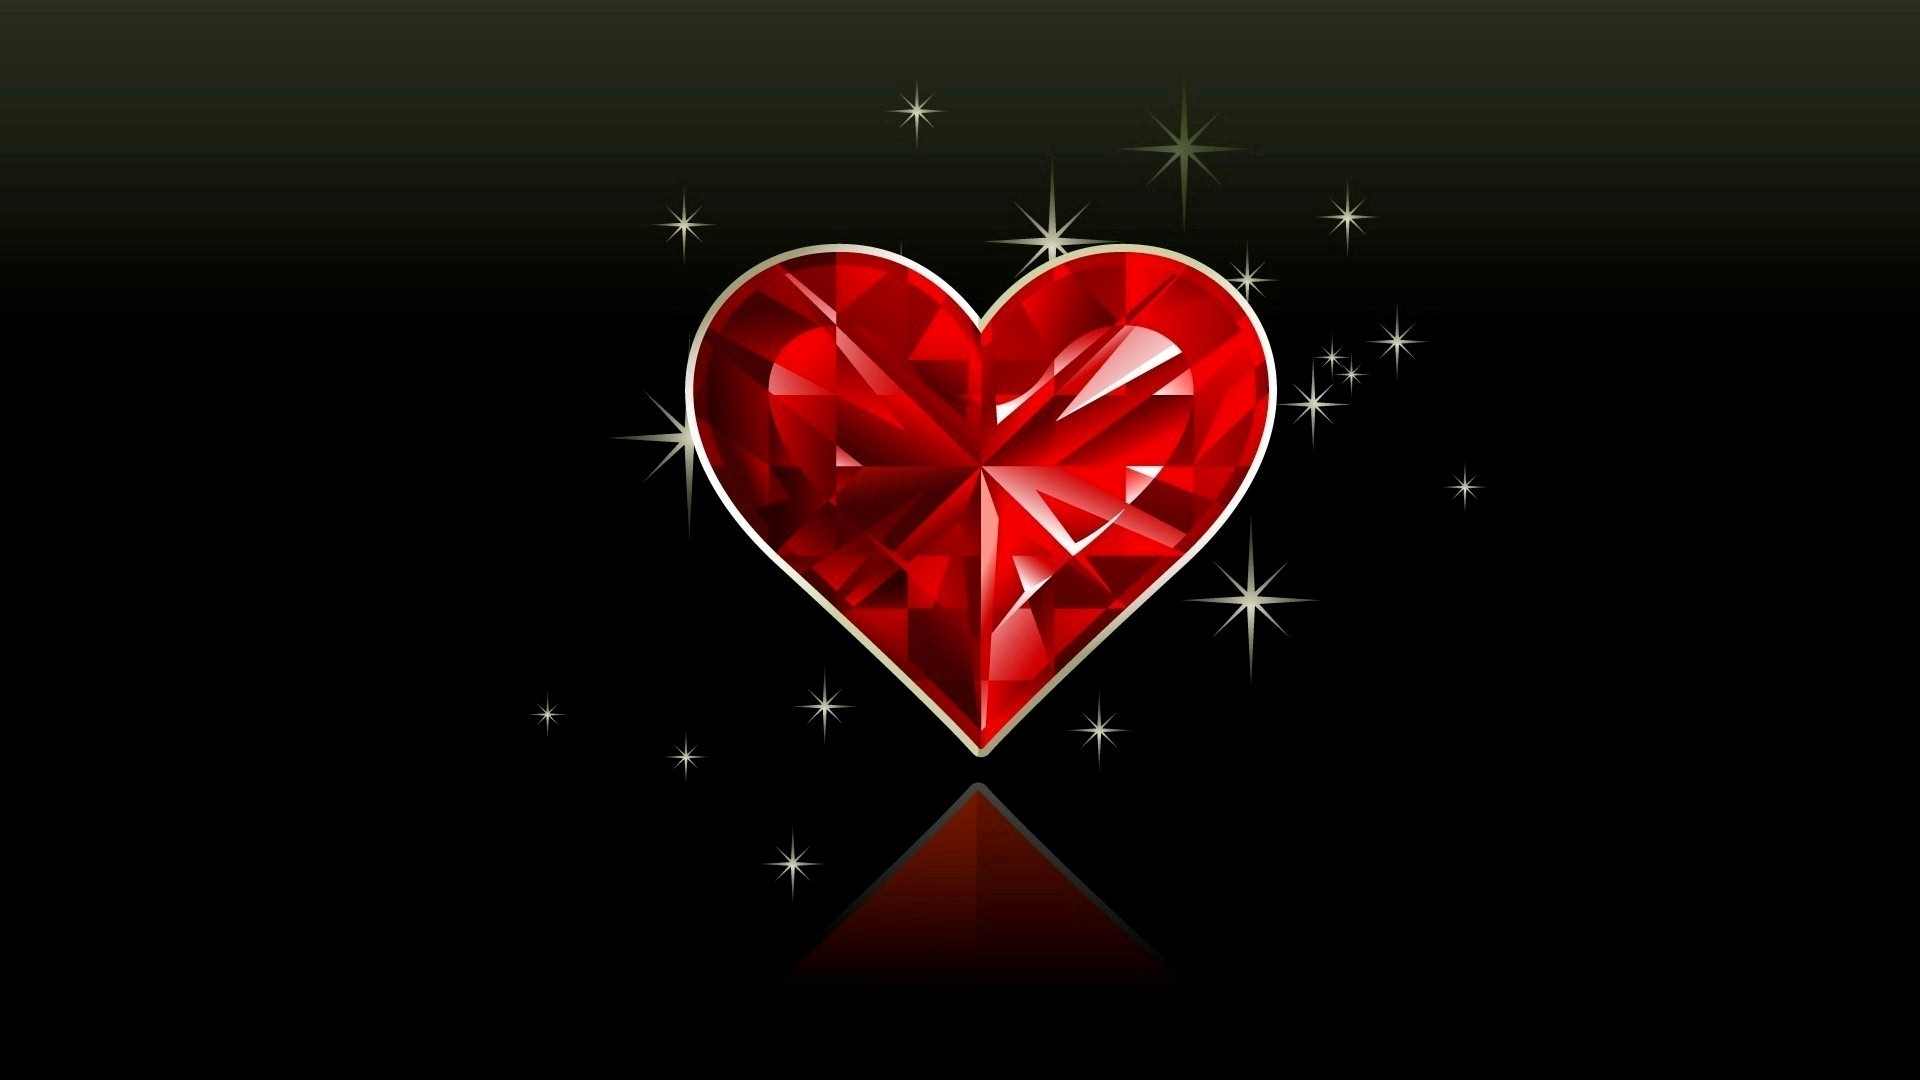 red heart black background (46+ images)